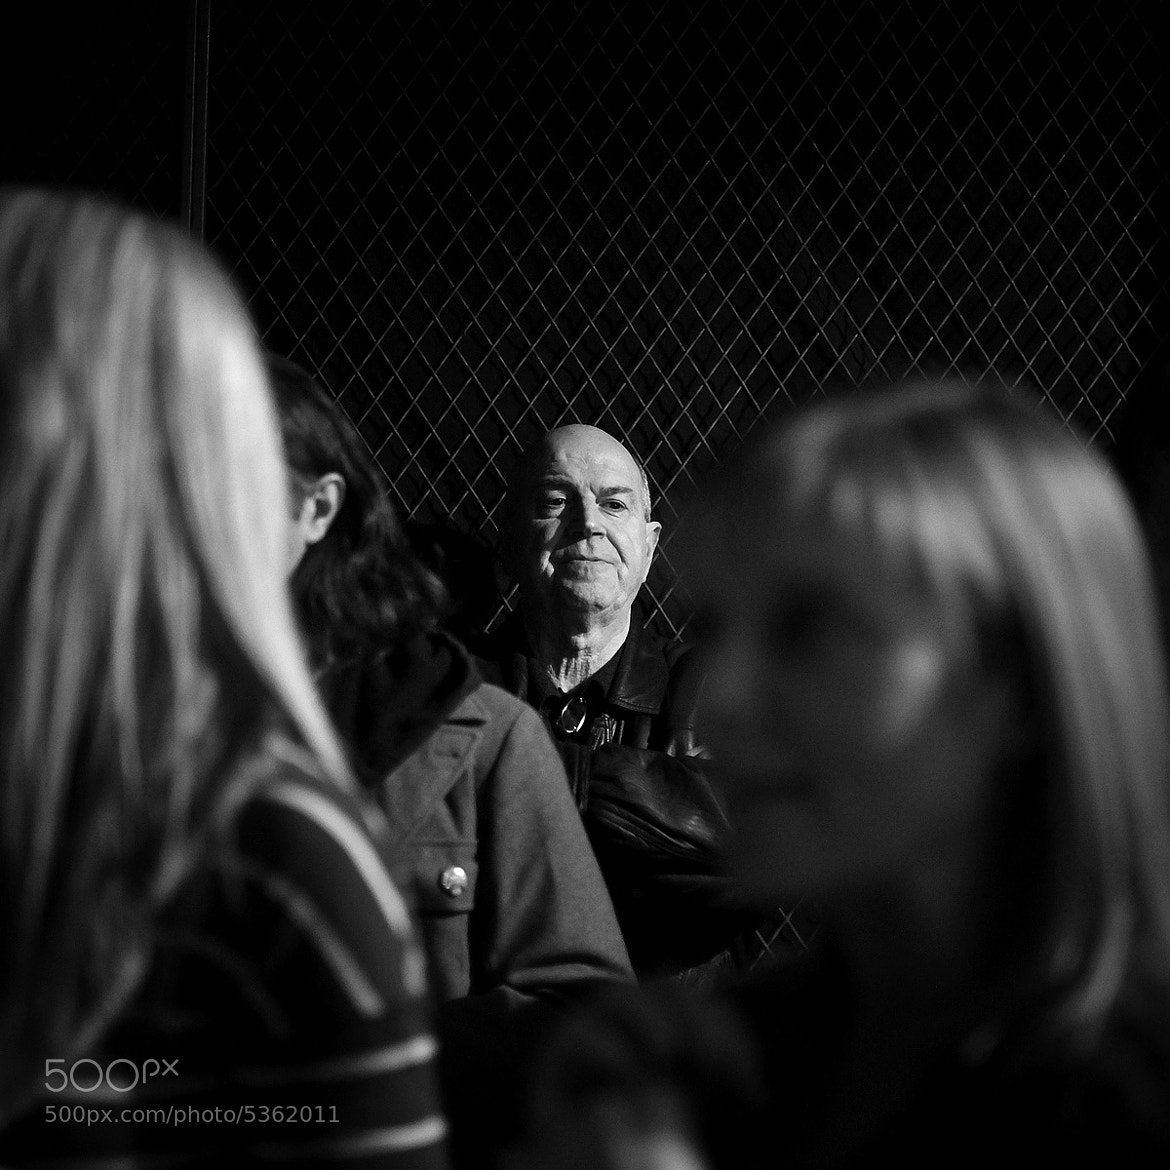 Photograph Waiting Around by Zack Arias on 500px